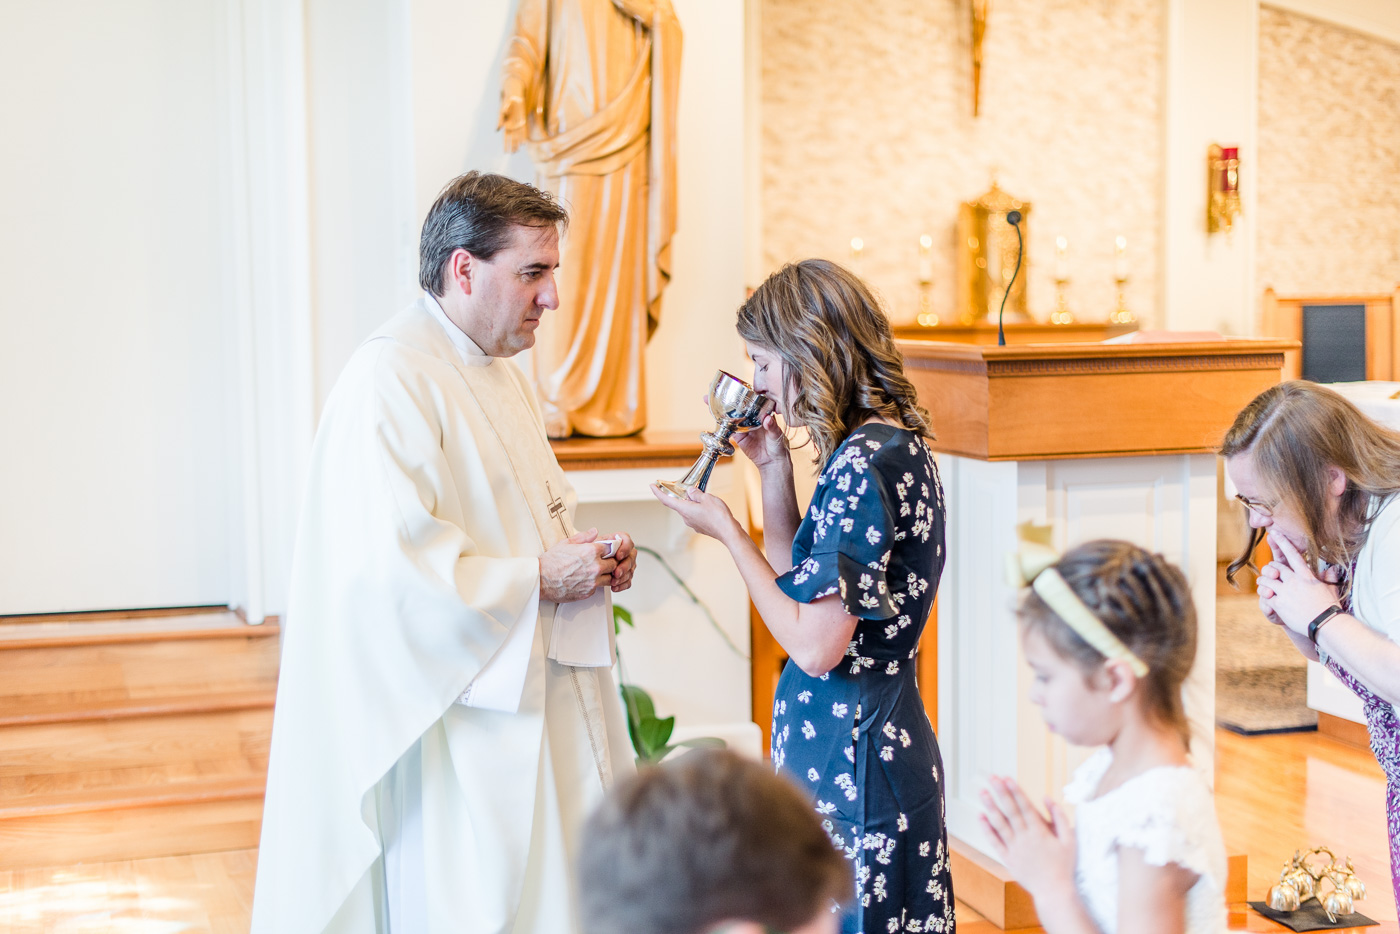 Emily-Annette-Photography-Catholic-Consecrated-Commitment-Mass-Event-Diocese-Arlington-Fairfax-Photographer-Youth-Apostles-August-2018-14.jpg